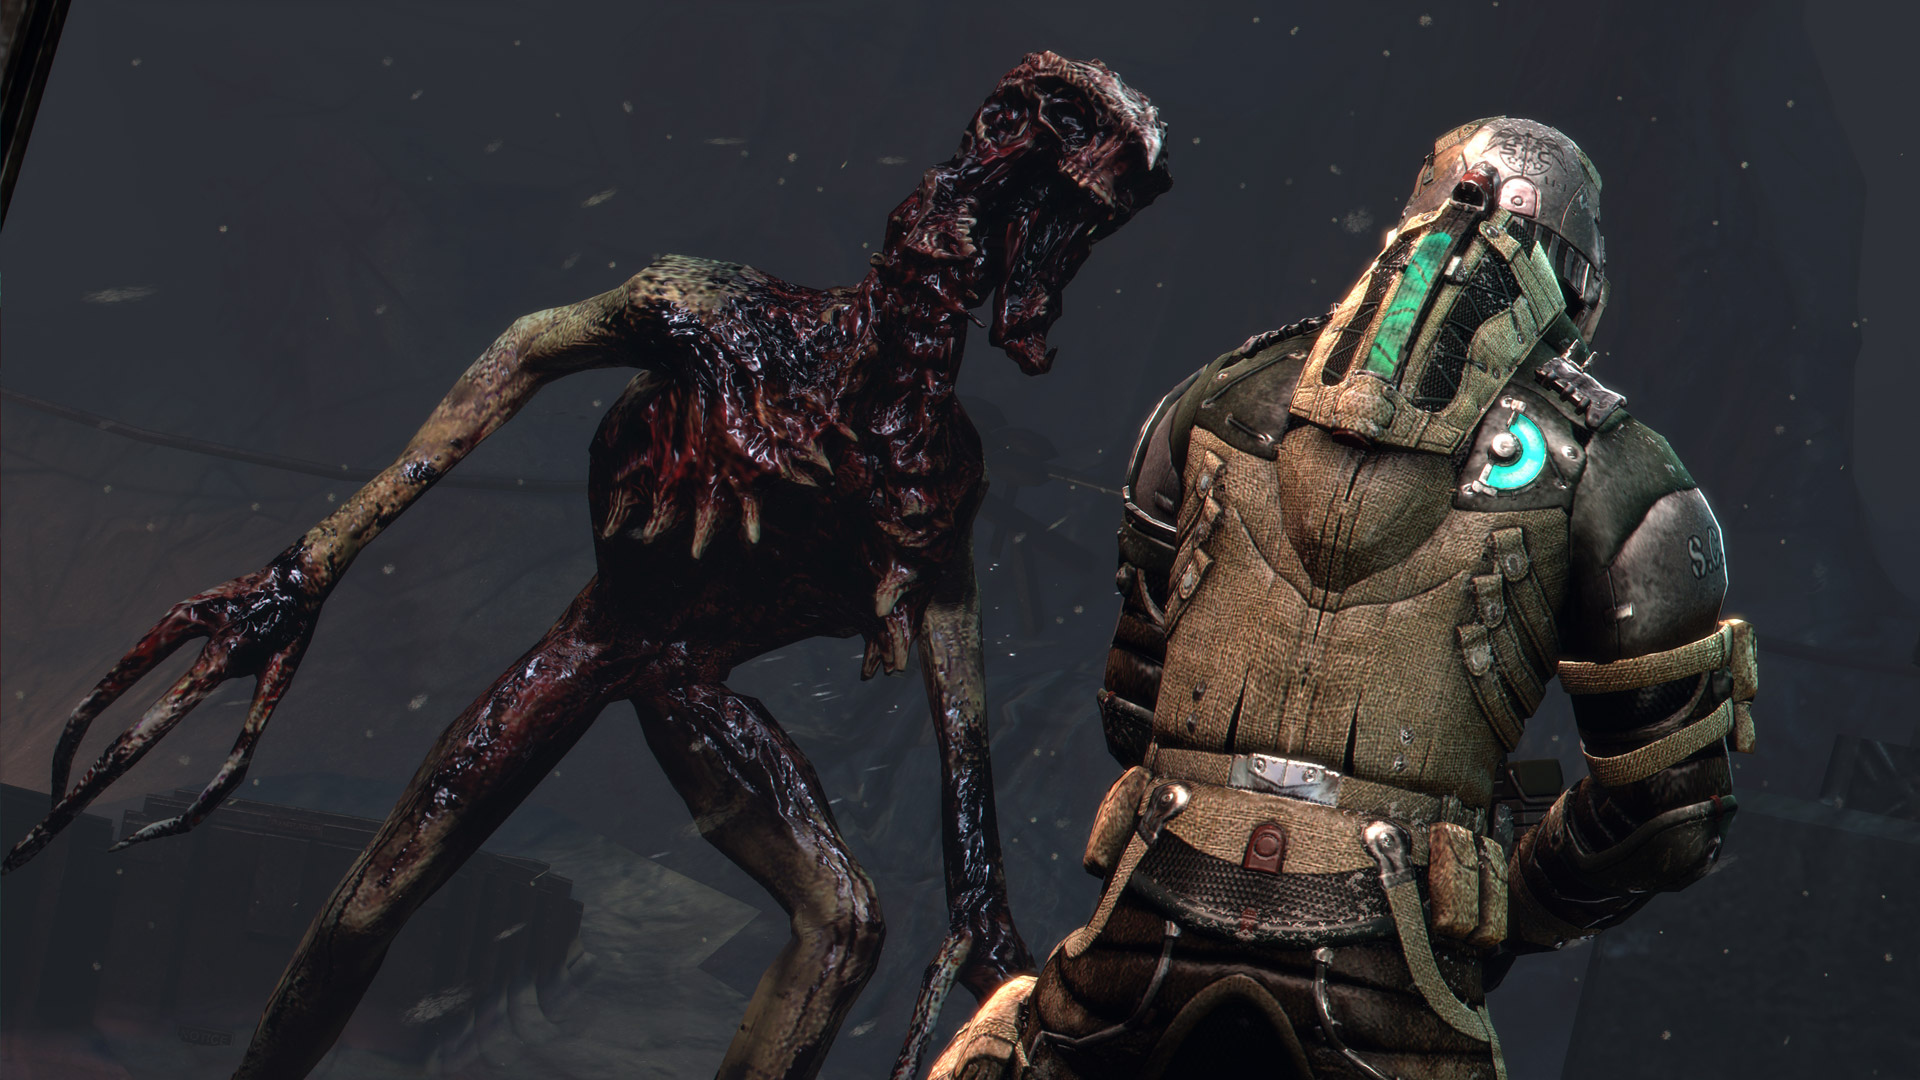 ... Dead Space 3 Screenshots Reveal Grisly Deaths, Wooden Soldiers